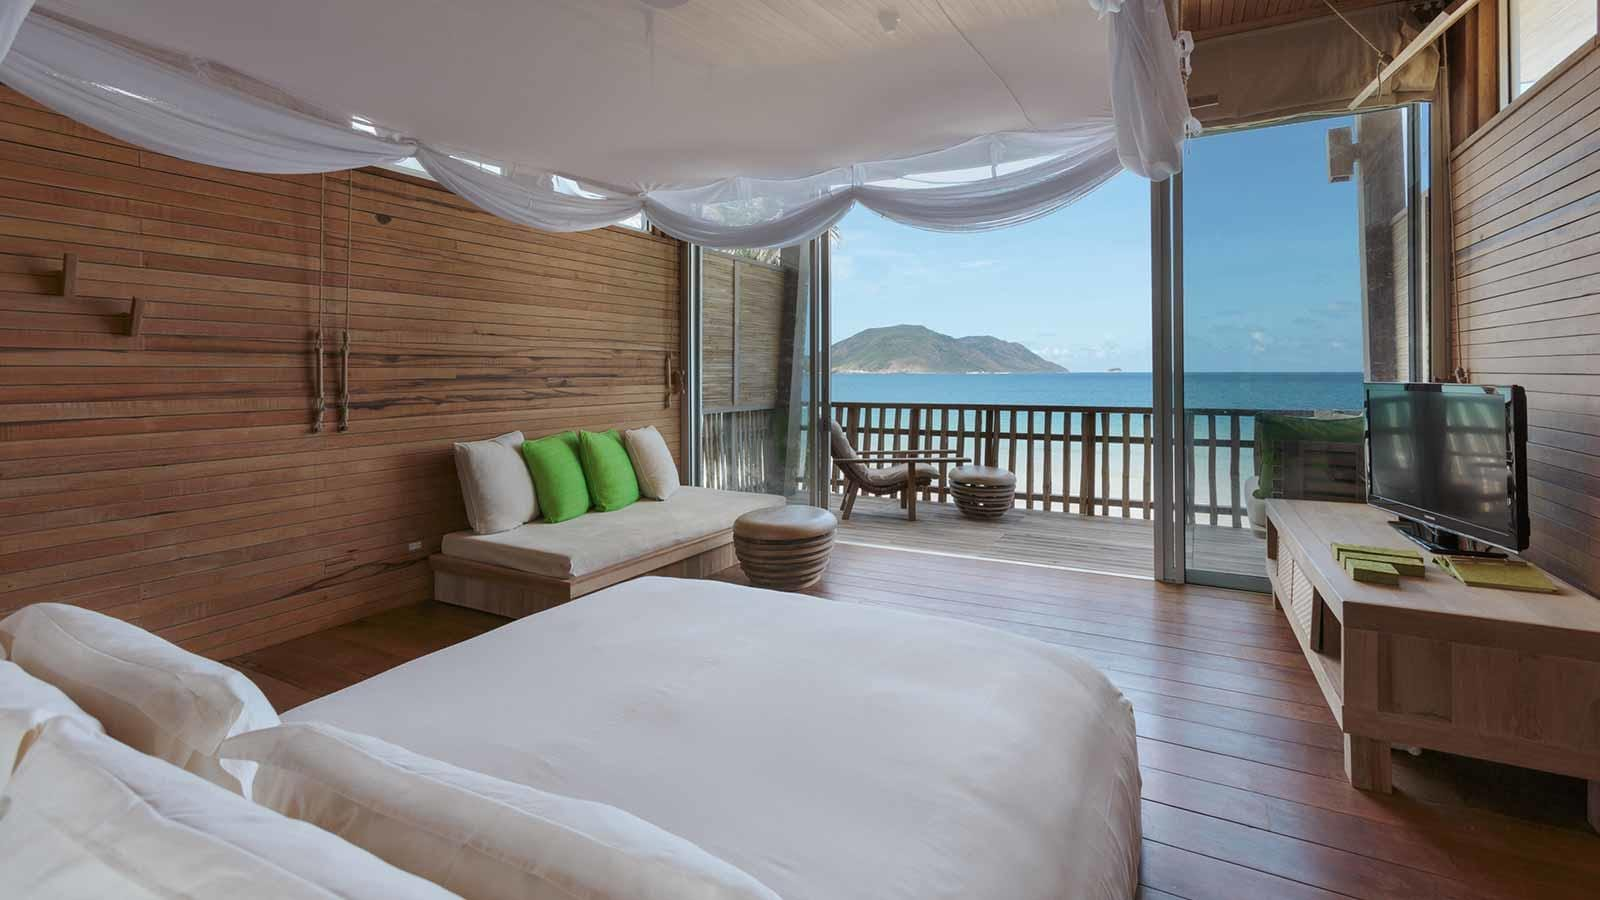 Room at Six Senses Con Dao 5 Star